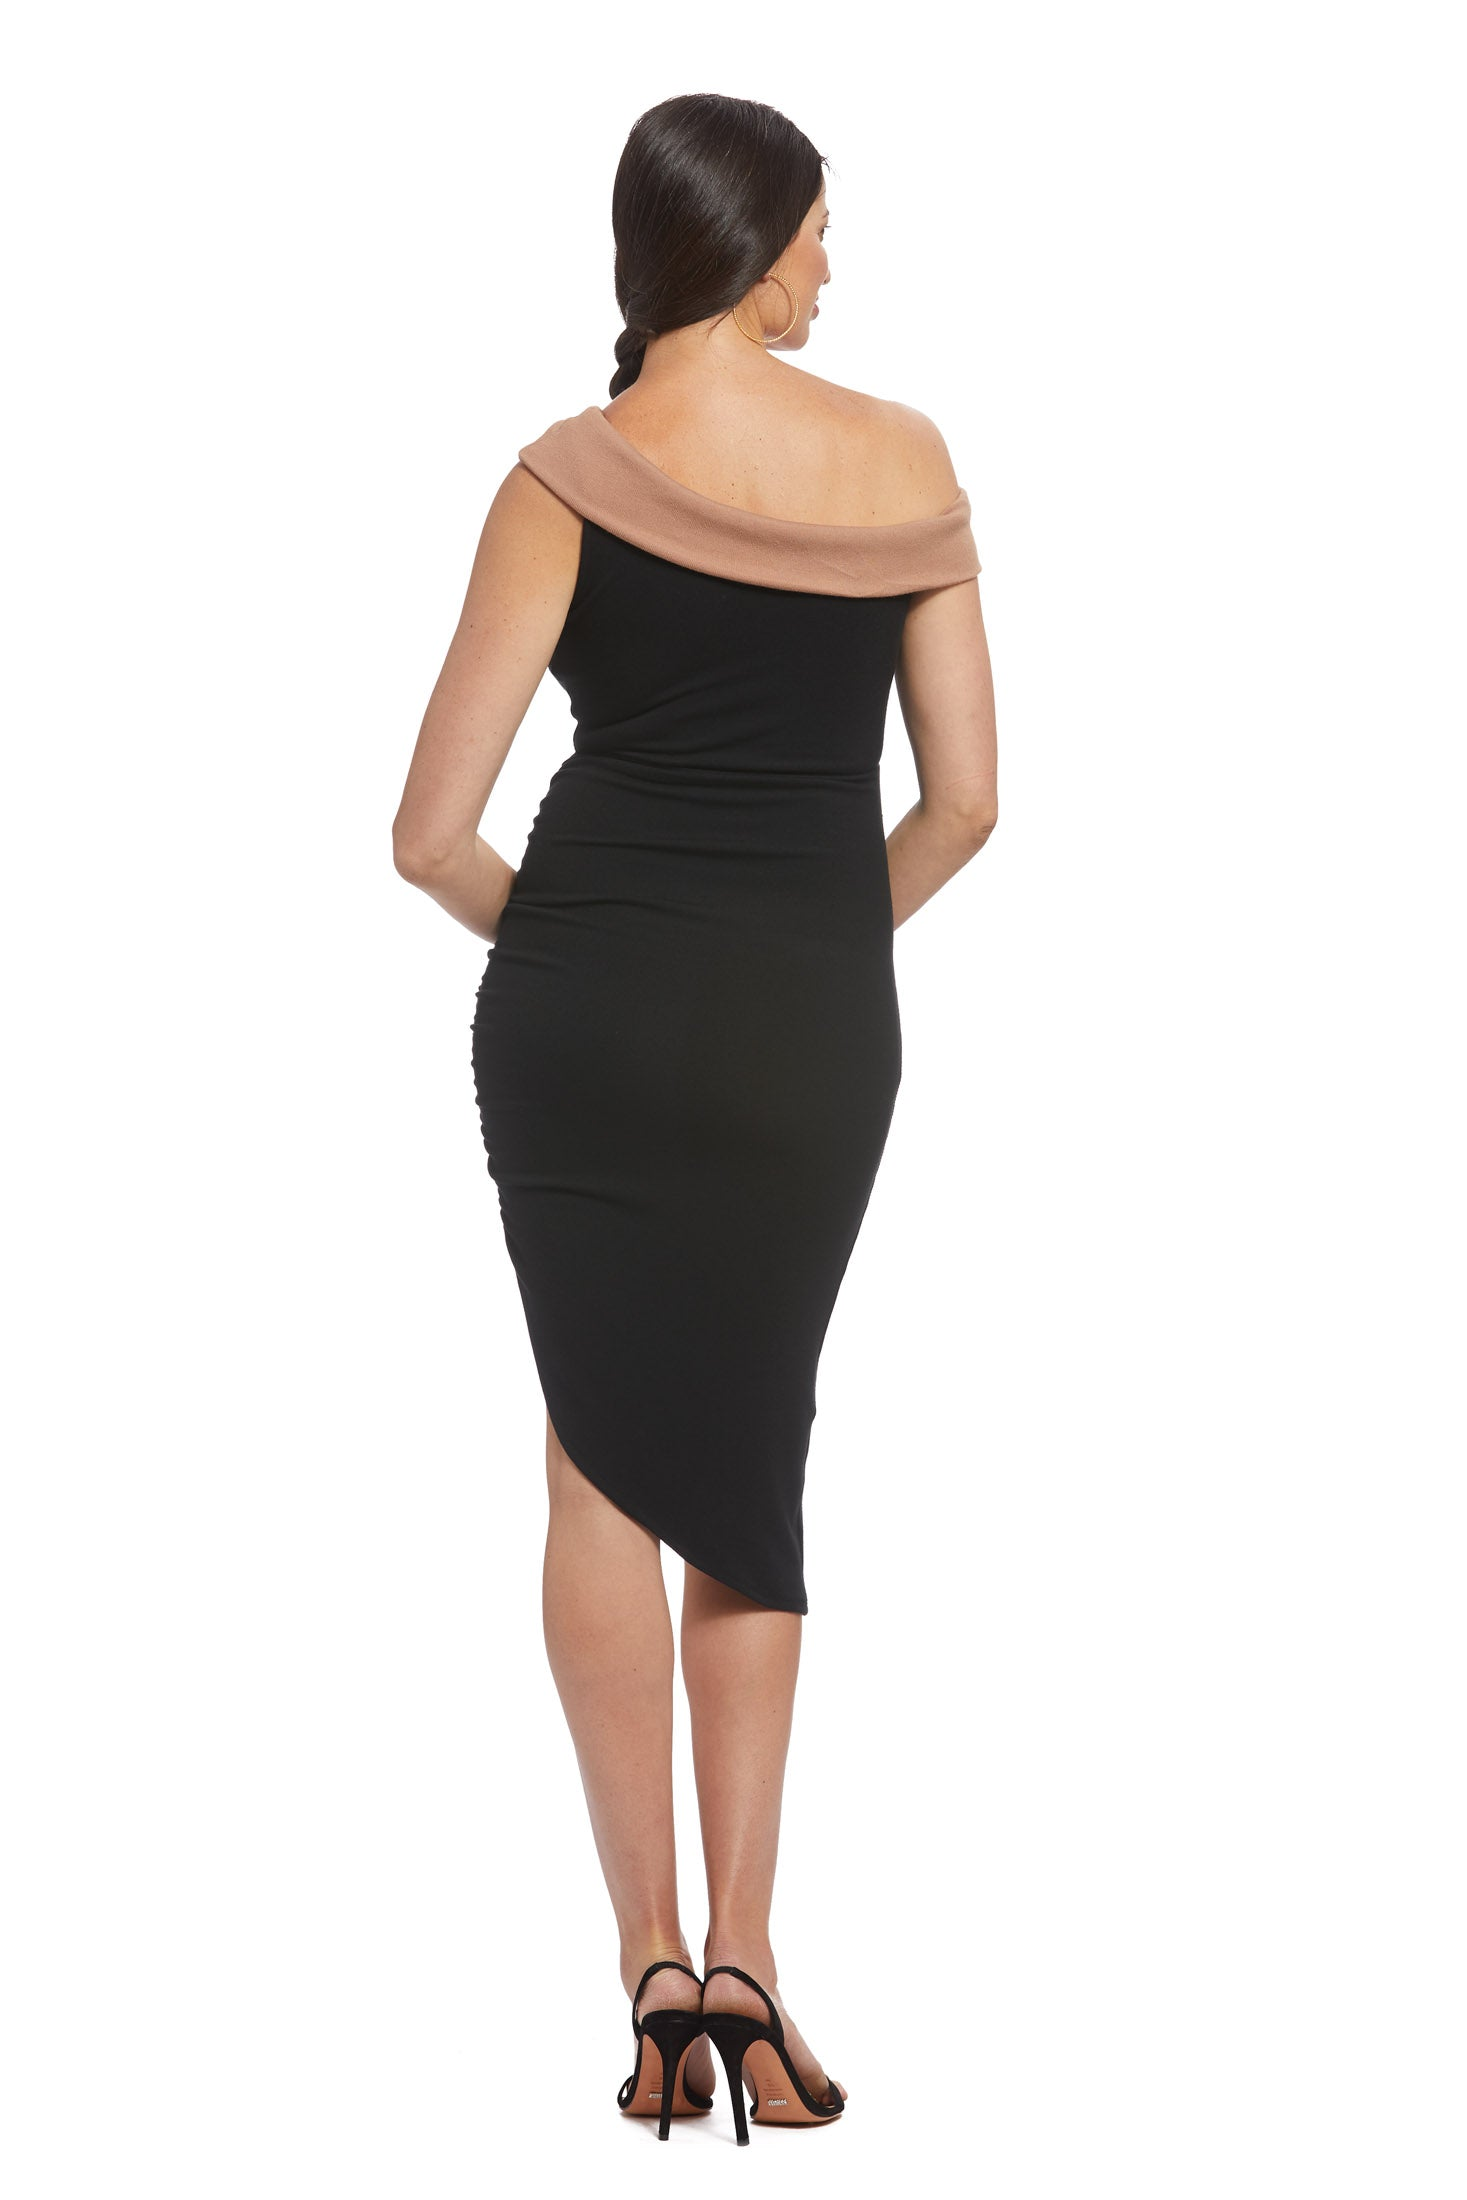 Luxe Rib Two-Tone Stella Dress - Black, Maternity